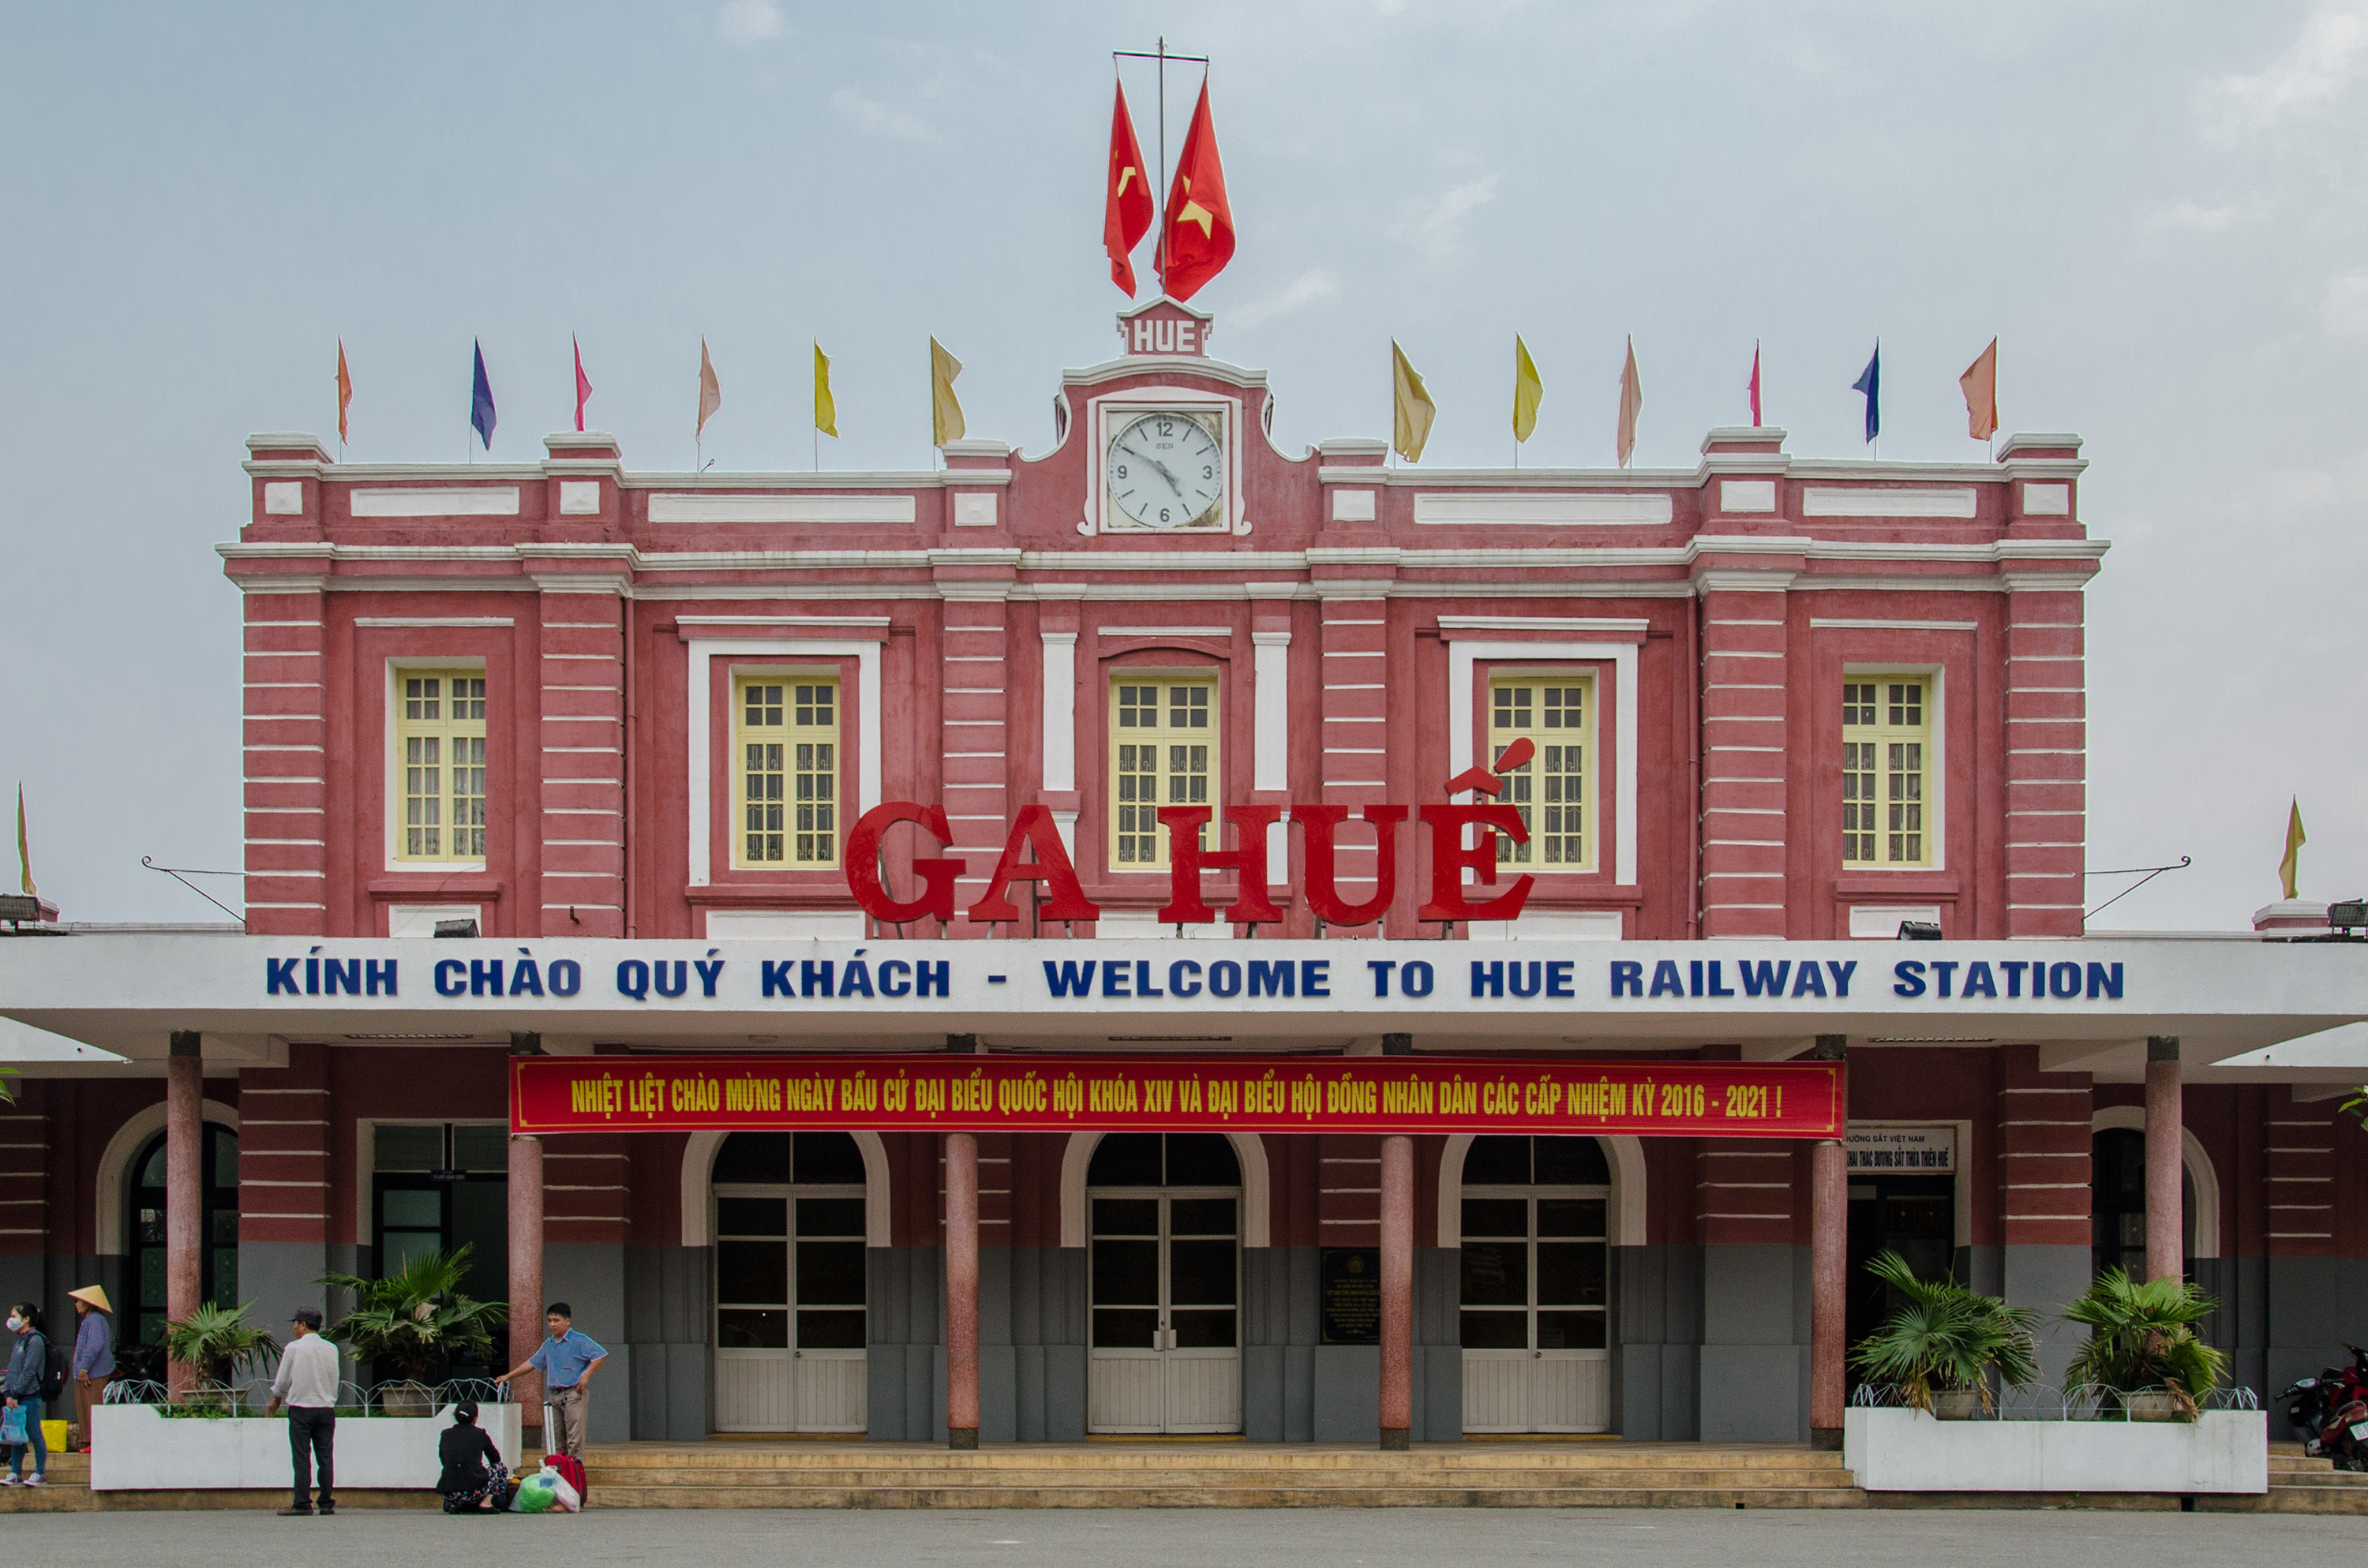 Train from Da Nang to Hue: Smooth Journey with Stunning Views